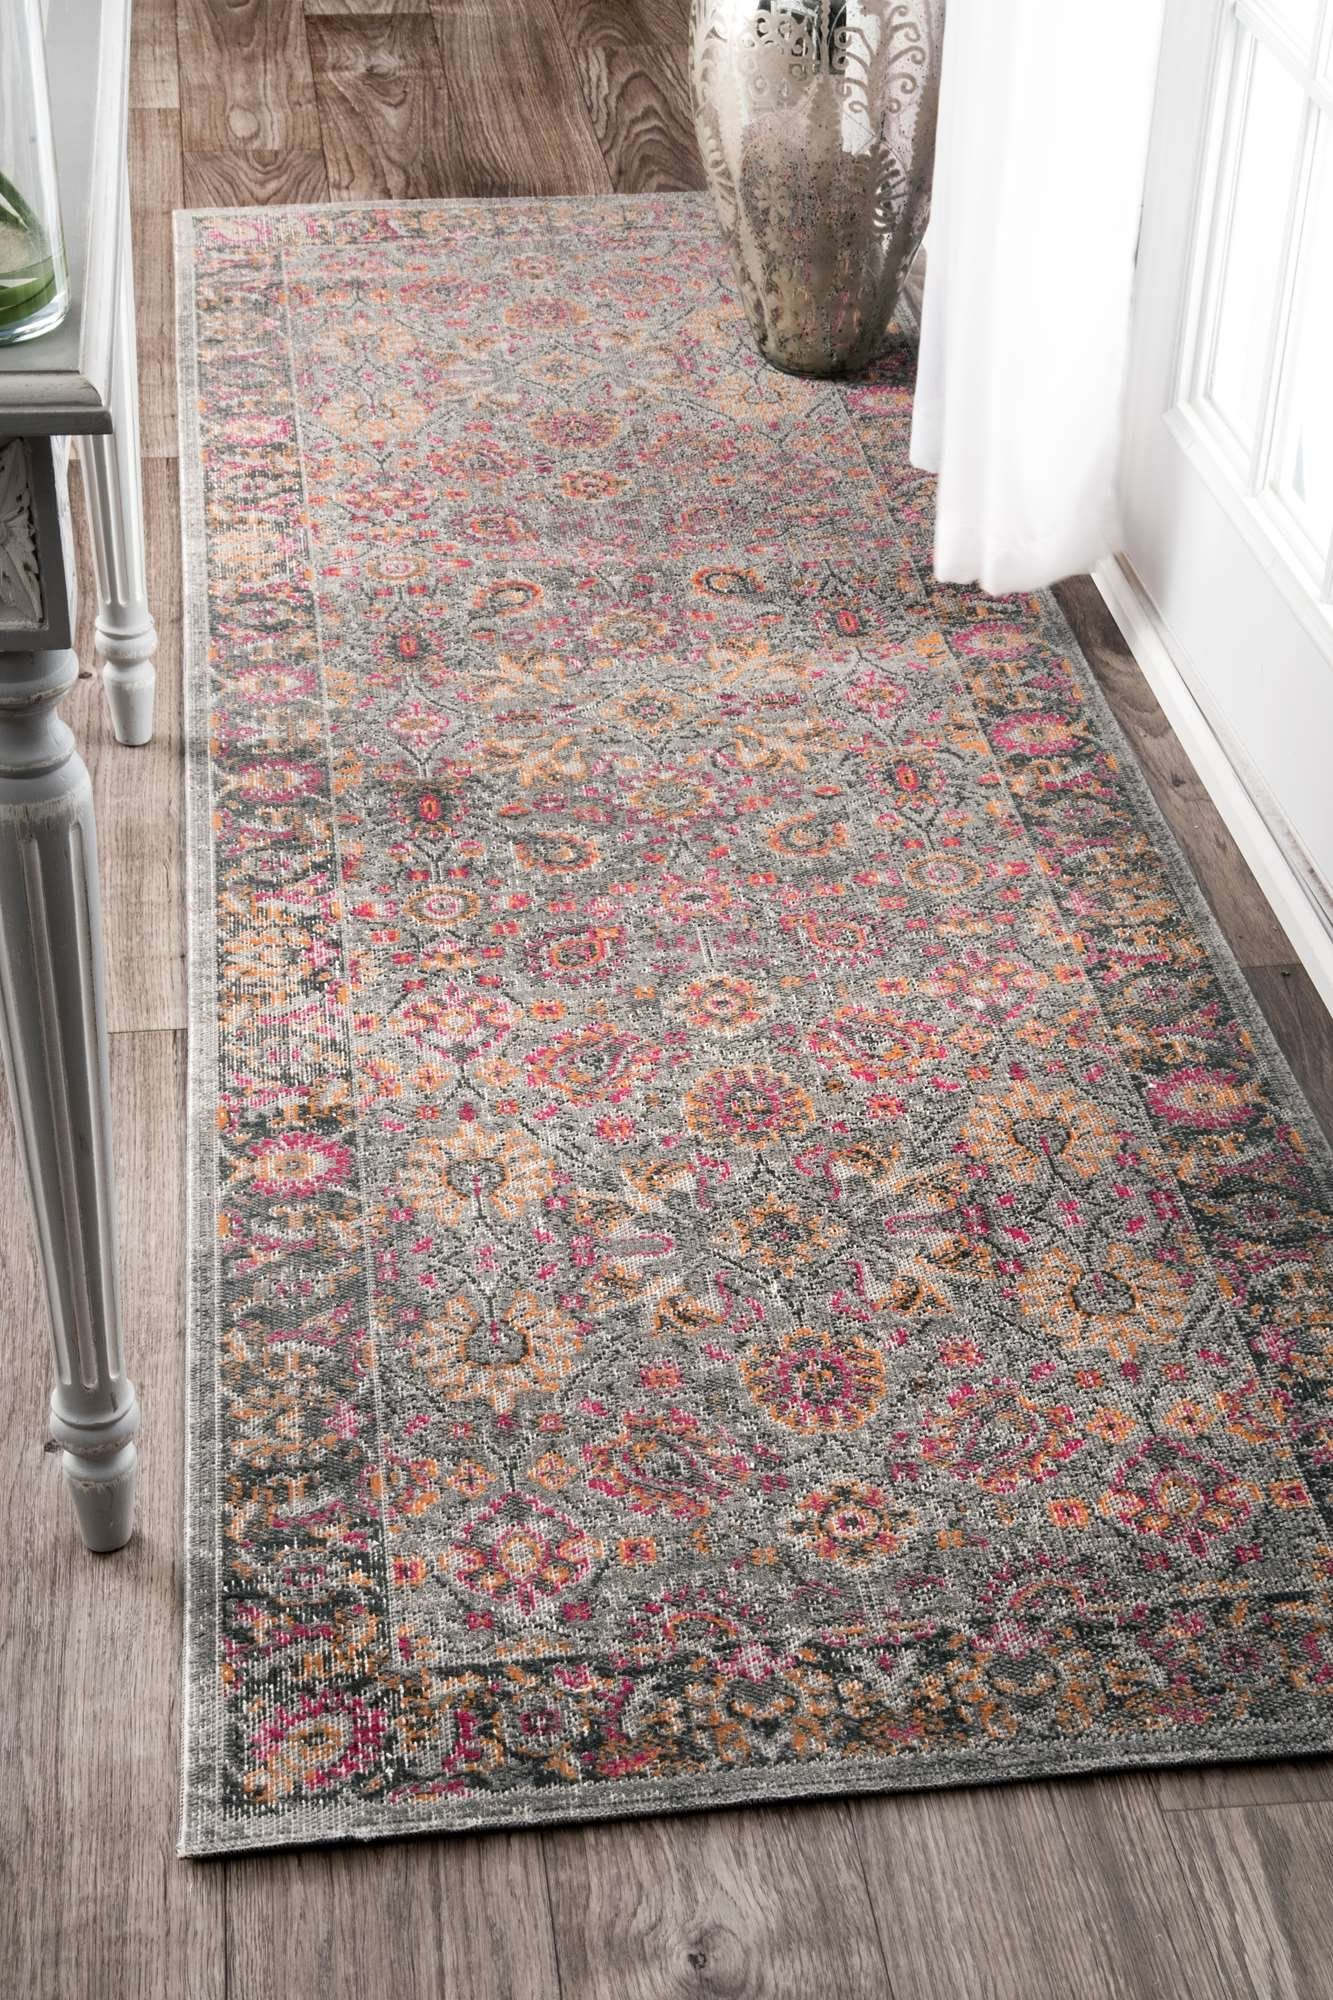 Khalil Pinkgray Area Rug Products Pinterest Vintage Home